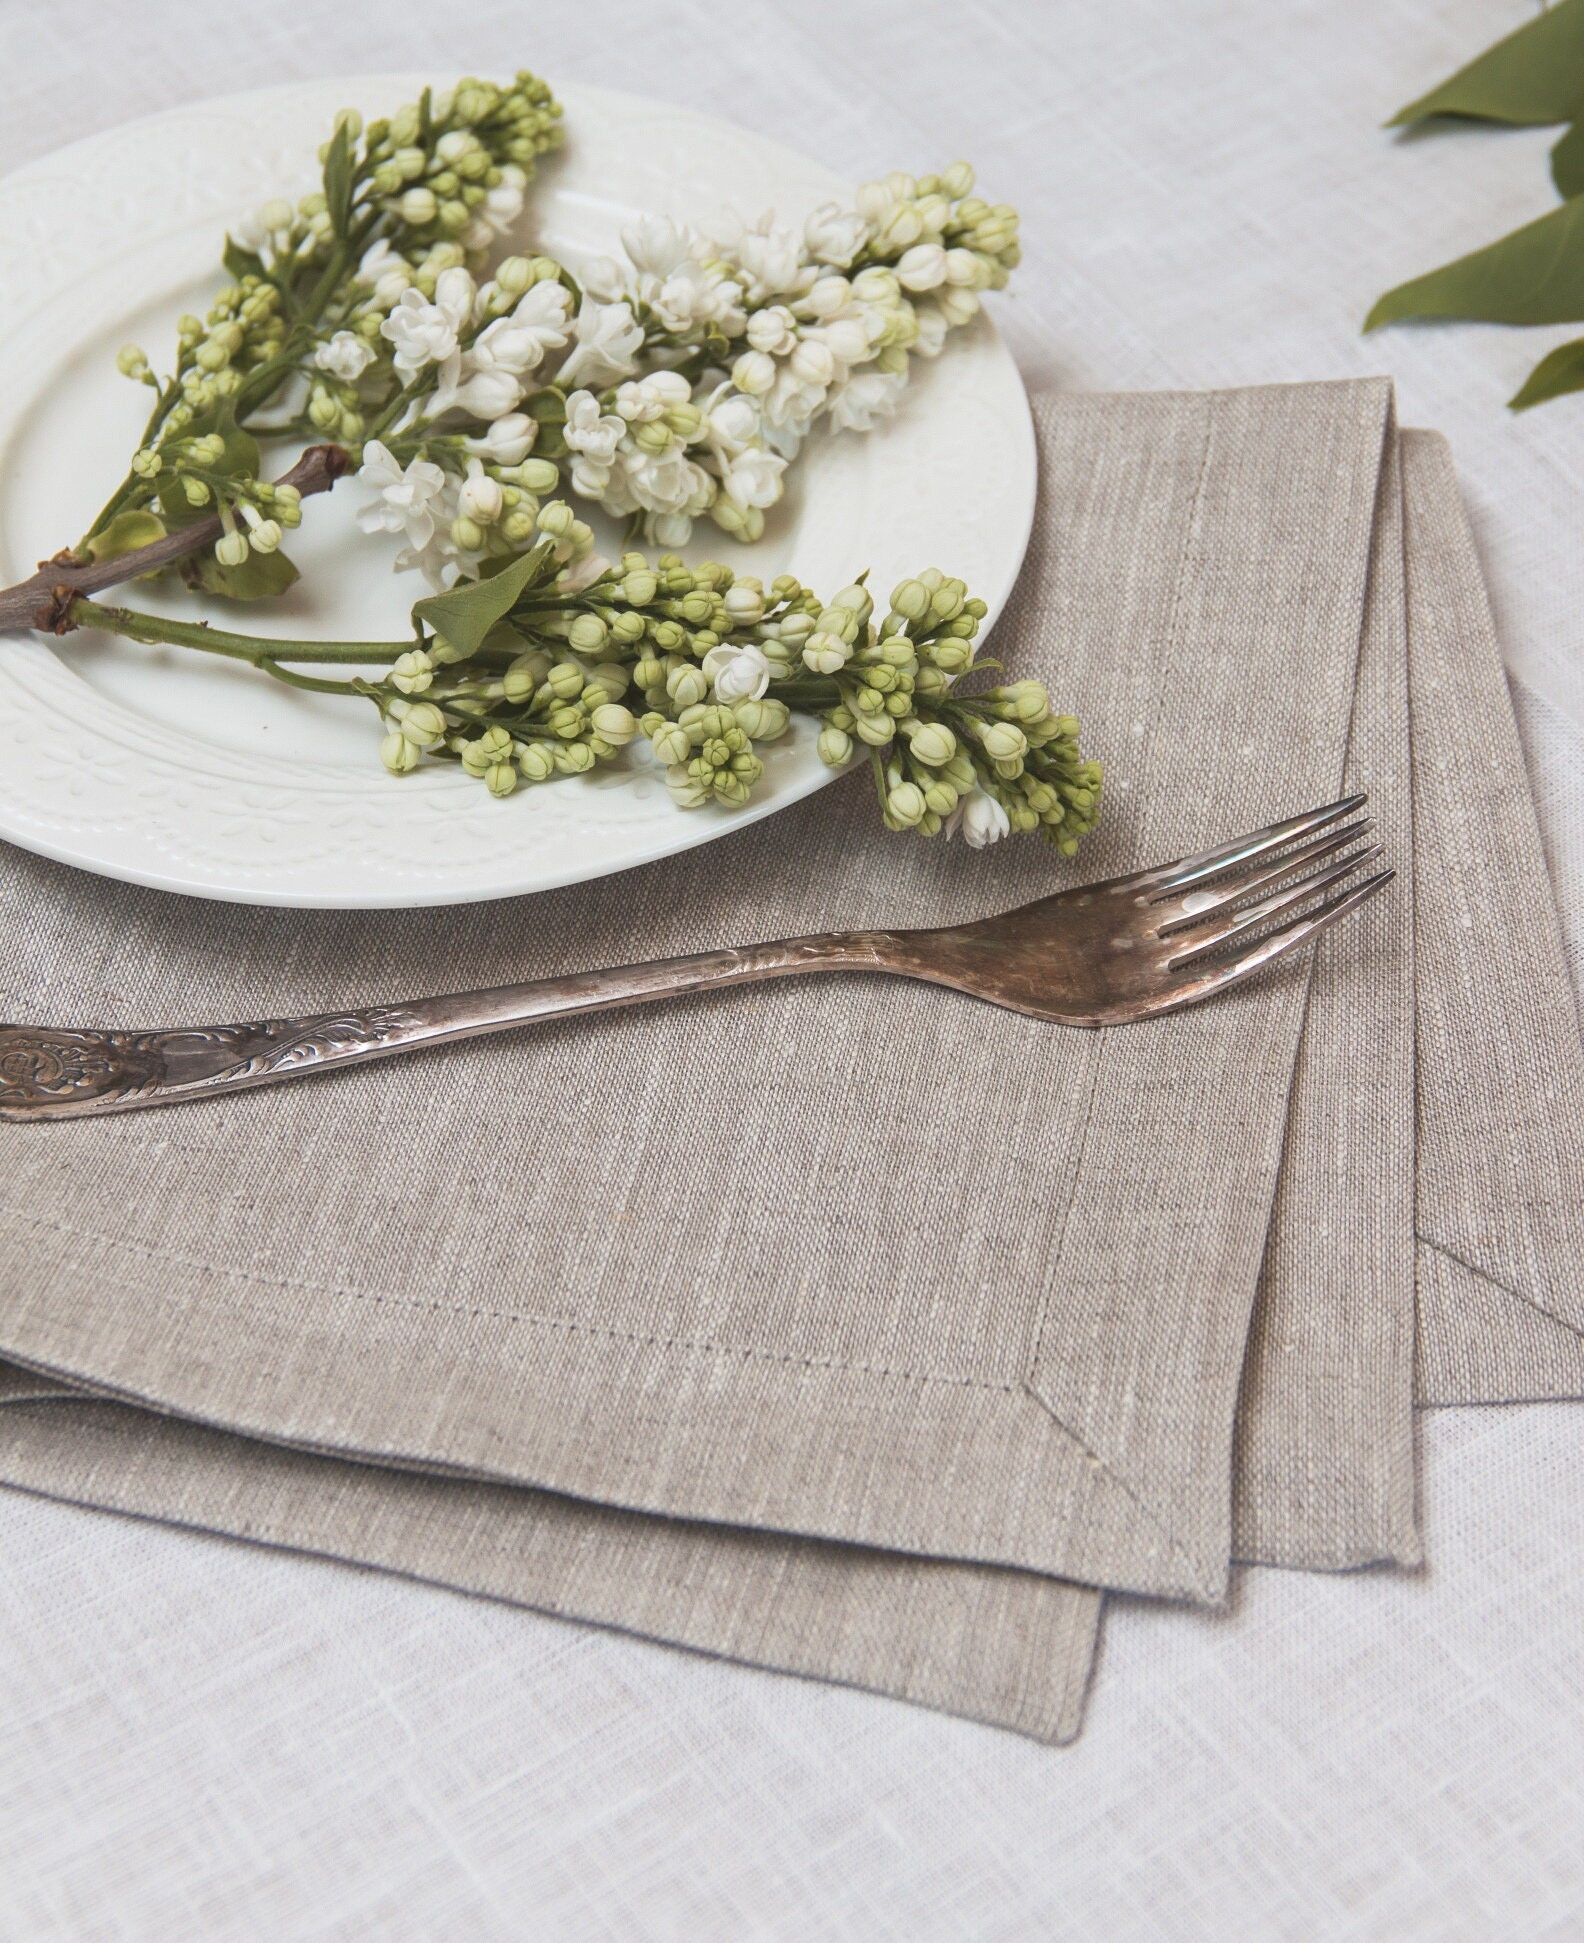 Pure Linen Placemat Set Of 6 8 10 Light Grey Linen Placemat Natural Linen Wedding Linen Placemat Rustic Placemat Christmas Placemat